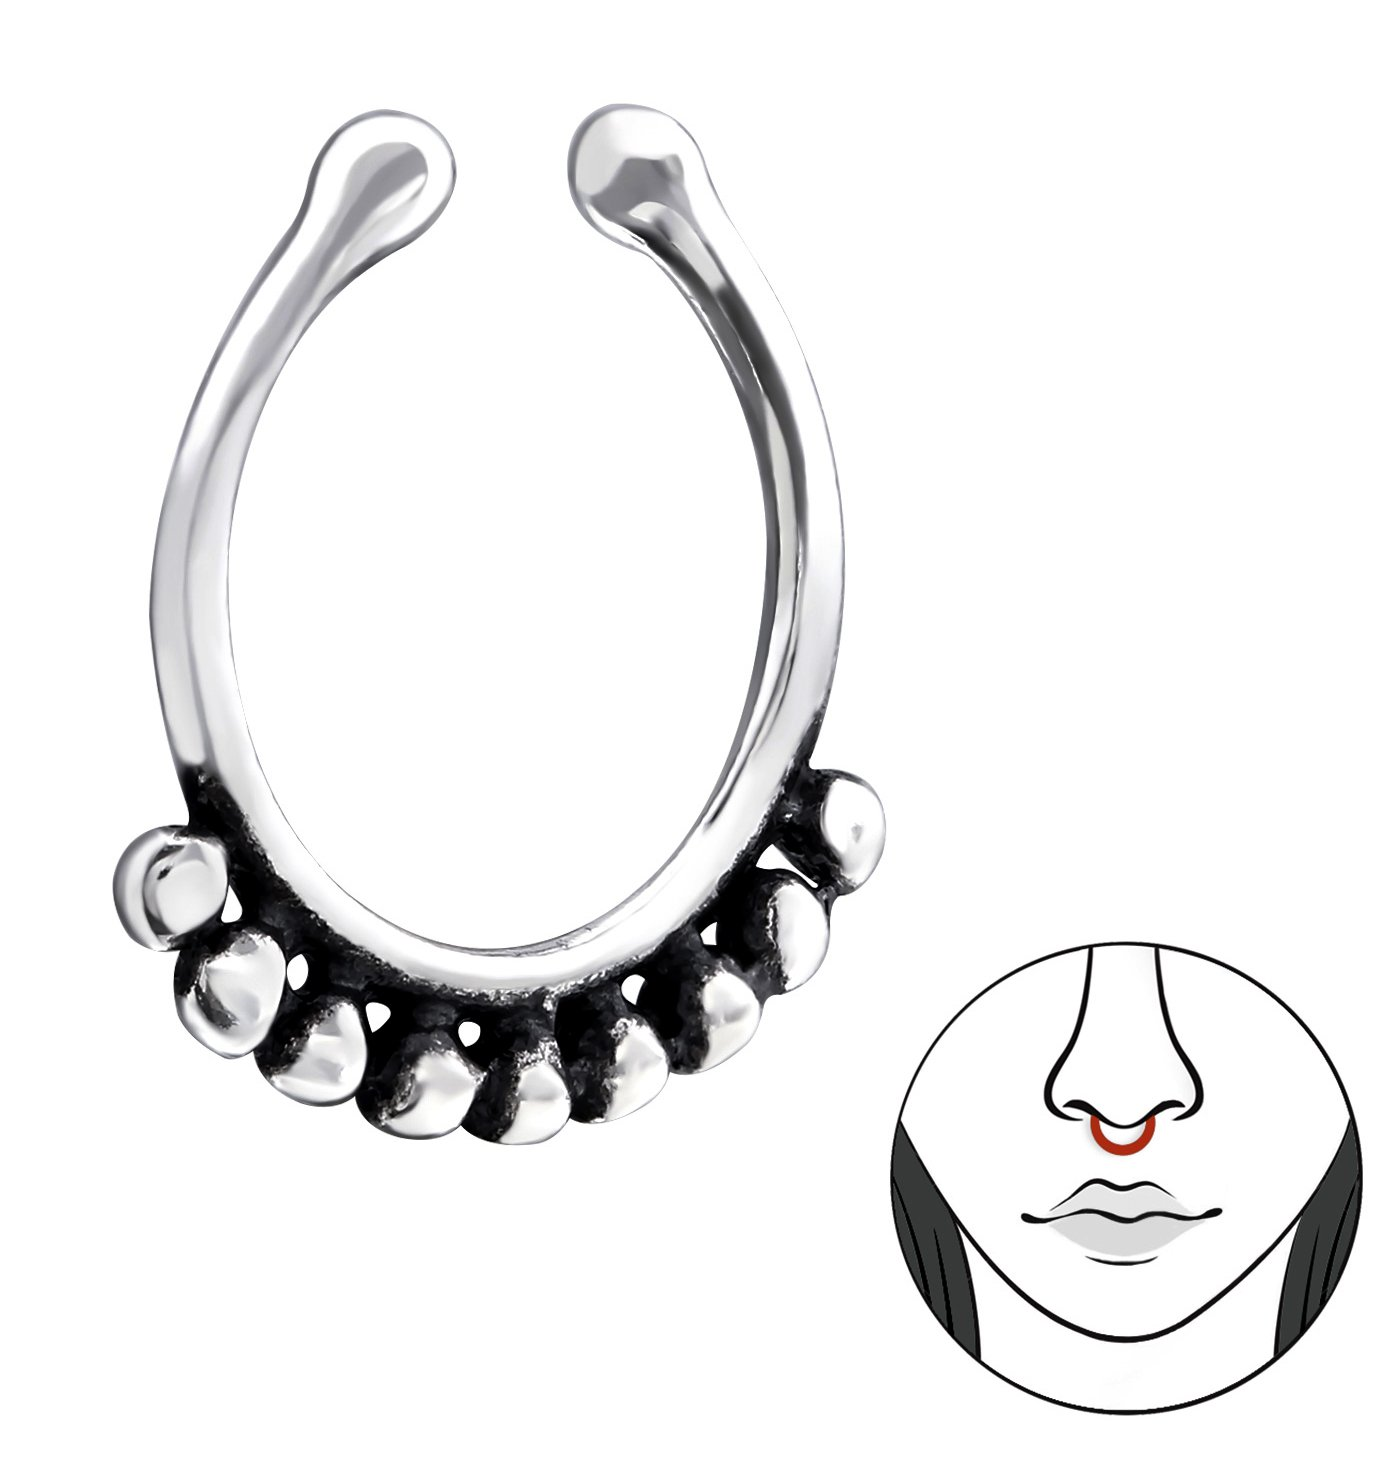 Best Wing Jewelry .925 Sterling Silver ''Bali-Style / Tribal-Style'' Tiny Small Non-Piercing Septum Piercing Clip-On Nose Clip, Nose Rings or Lip Rings